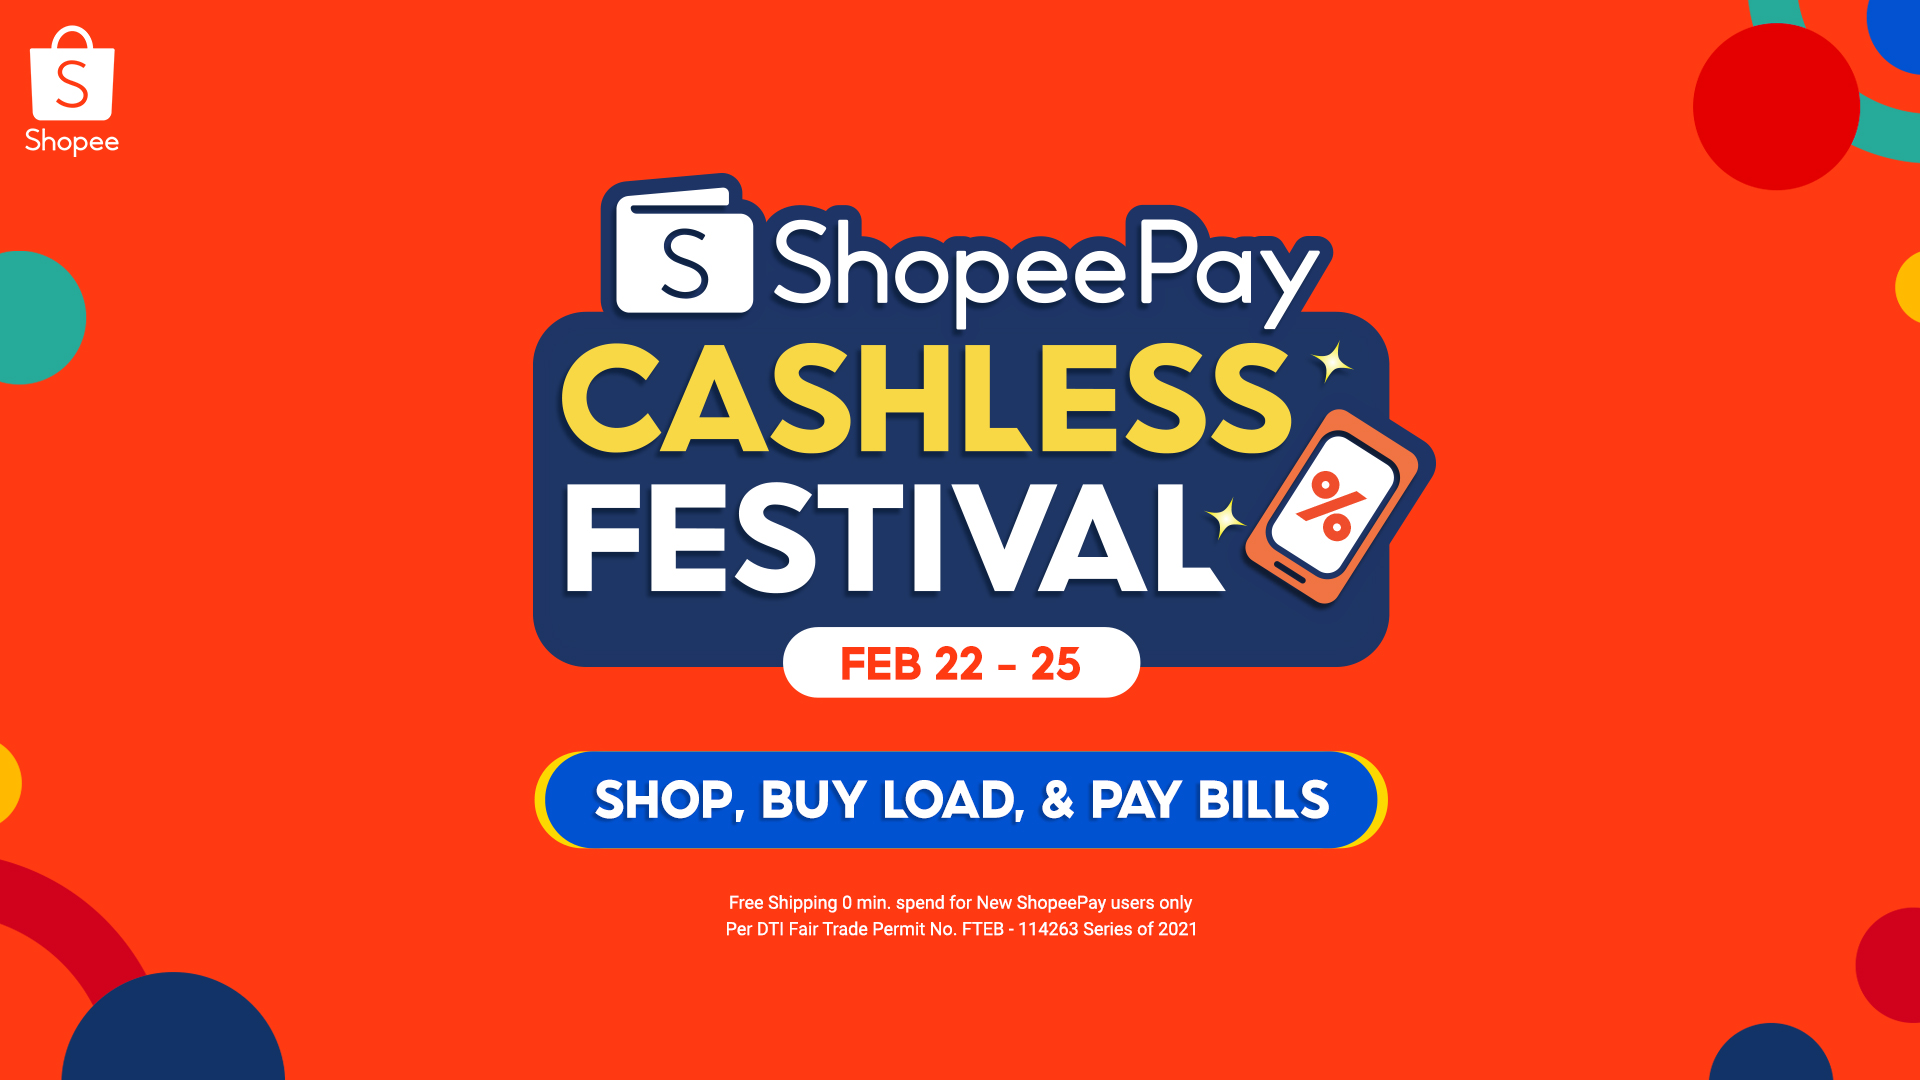 Enjoy Free Shipping, Cashback, and More at the 3.3 ShopeePay Cashless Festival